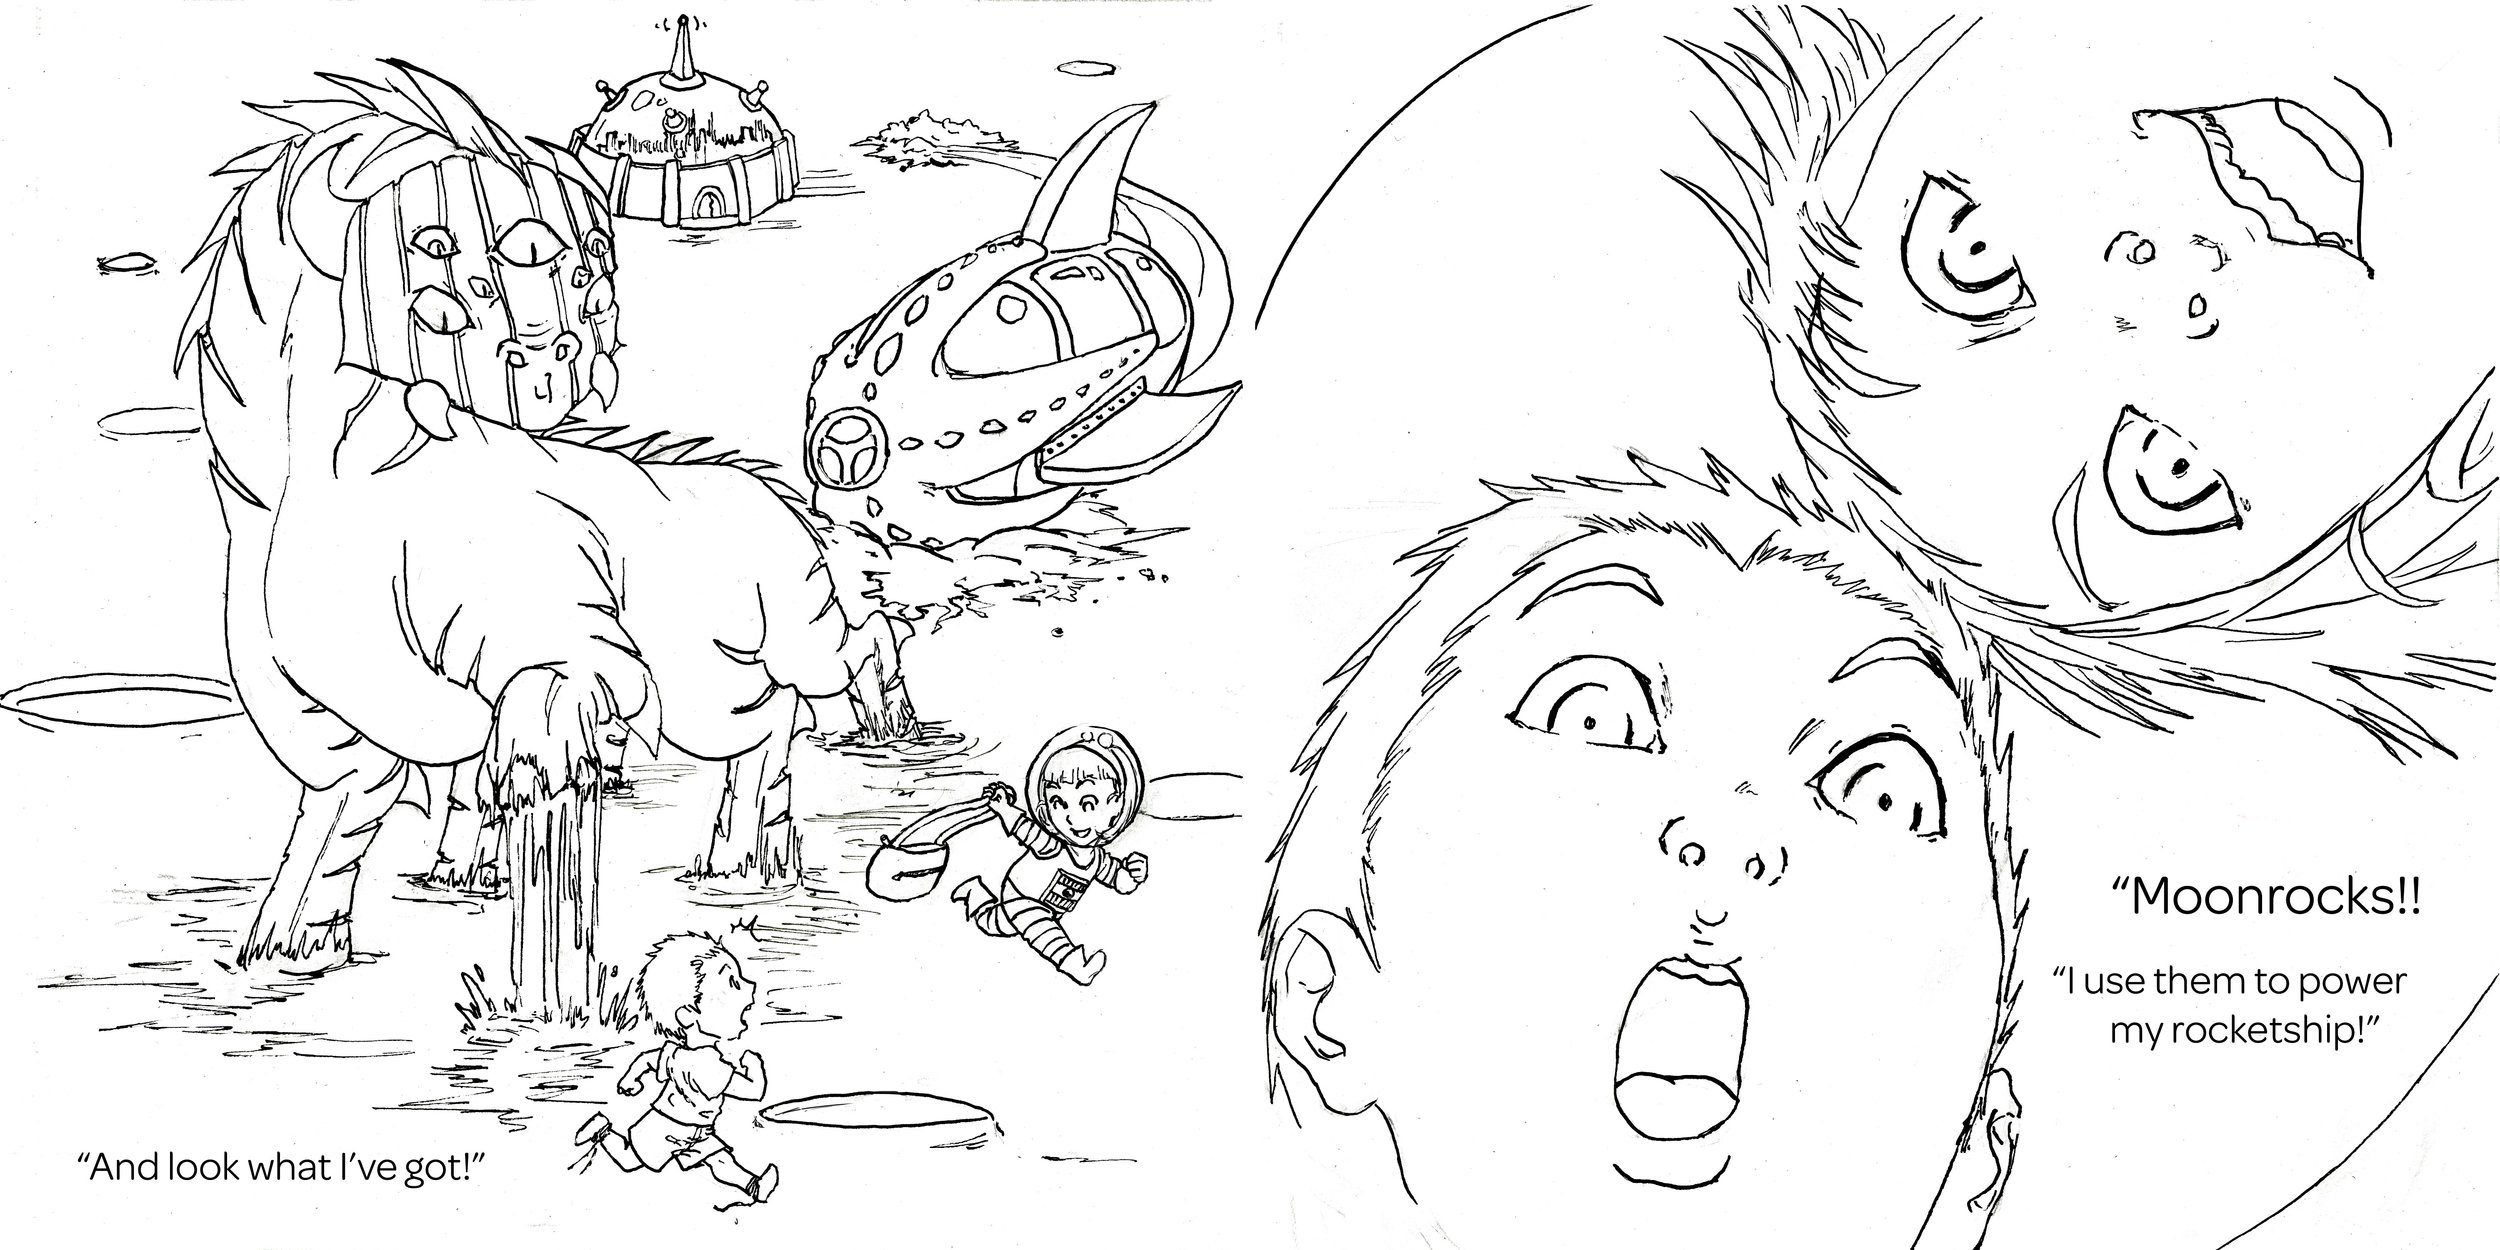 pages 12 & 13 spread.jpg